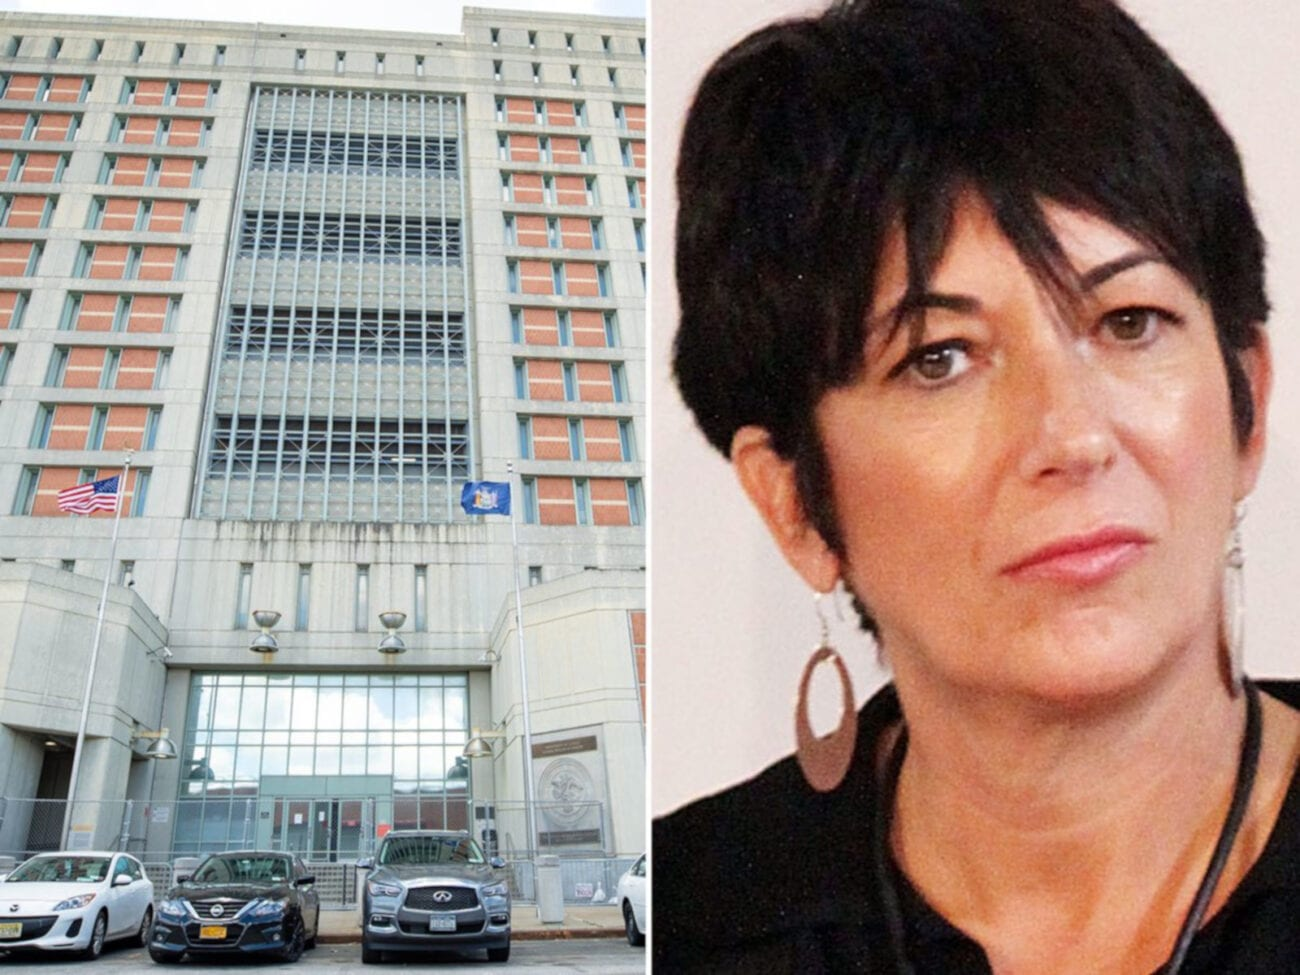 Is Ghislaine Maxwell alive or dead? Is there a conspiracy to make her 'disappear' like Jeffrey Epstein? Read about the conspiracy theories here.